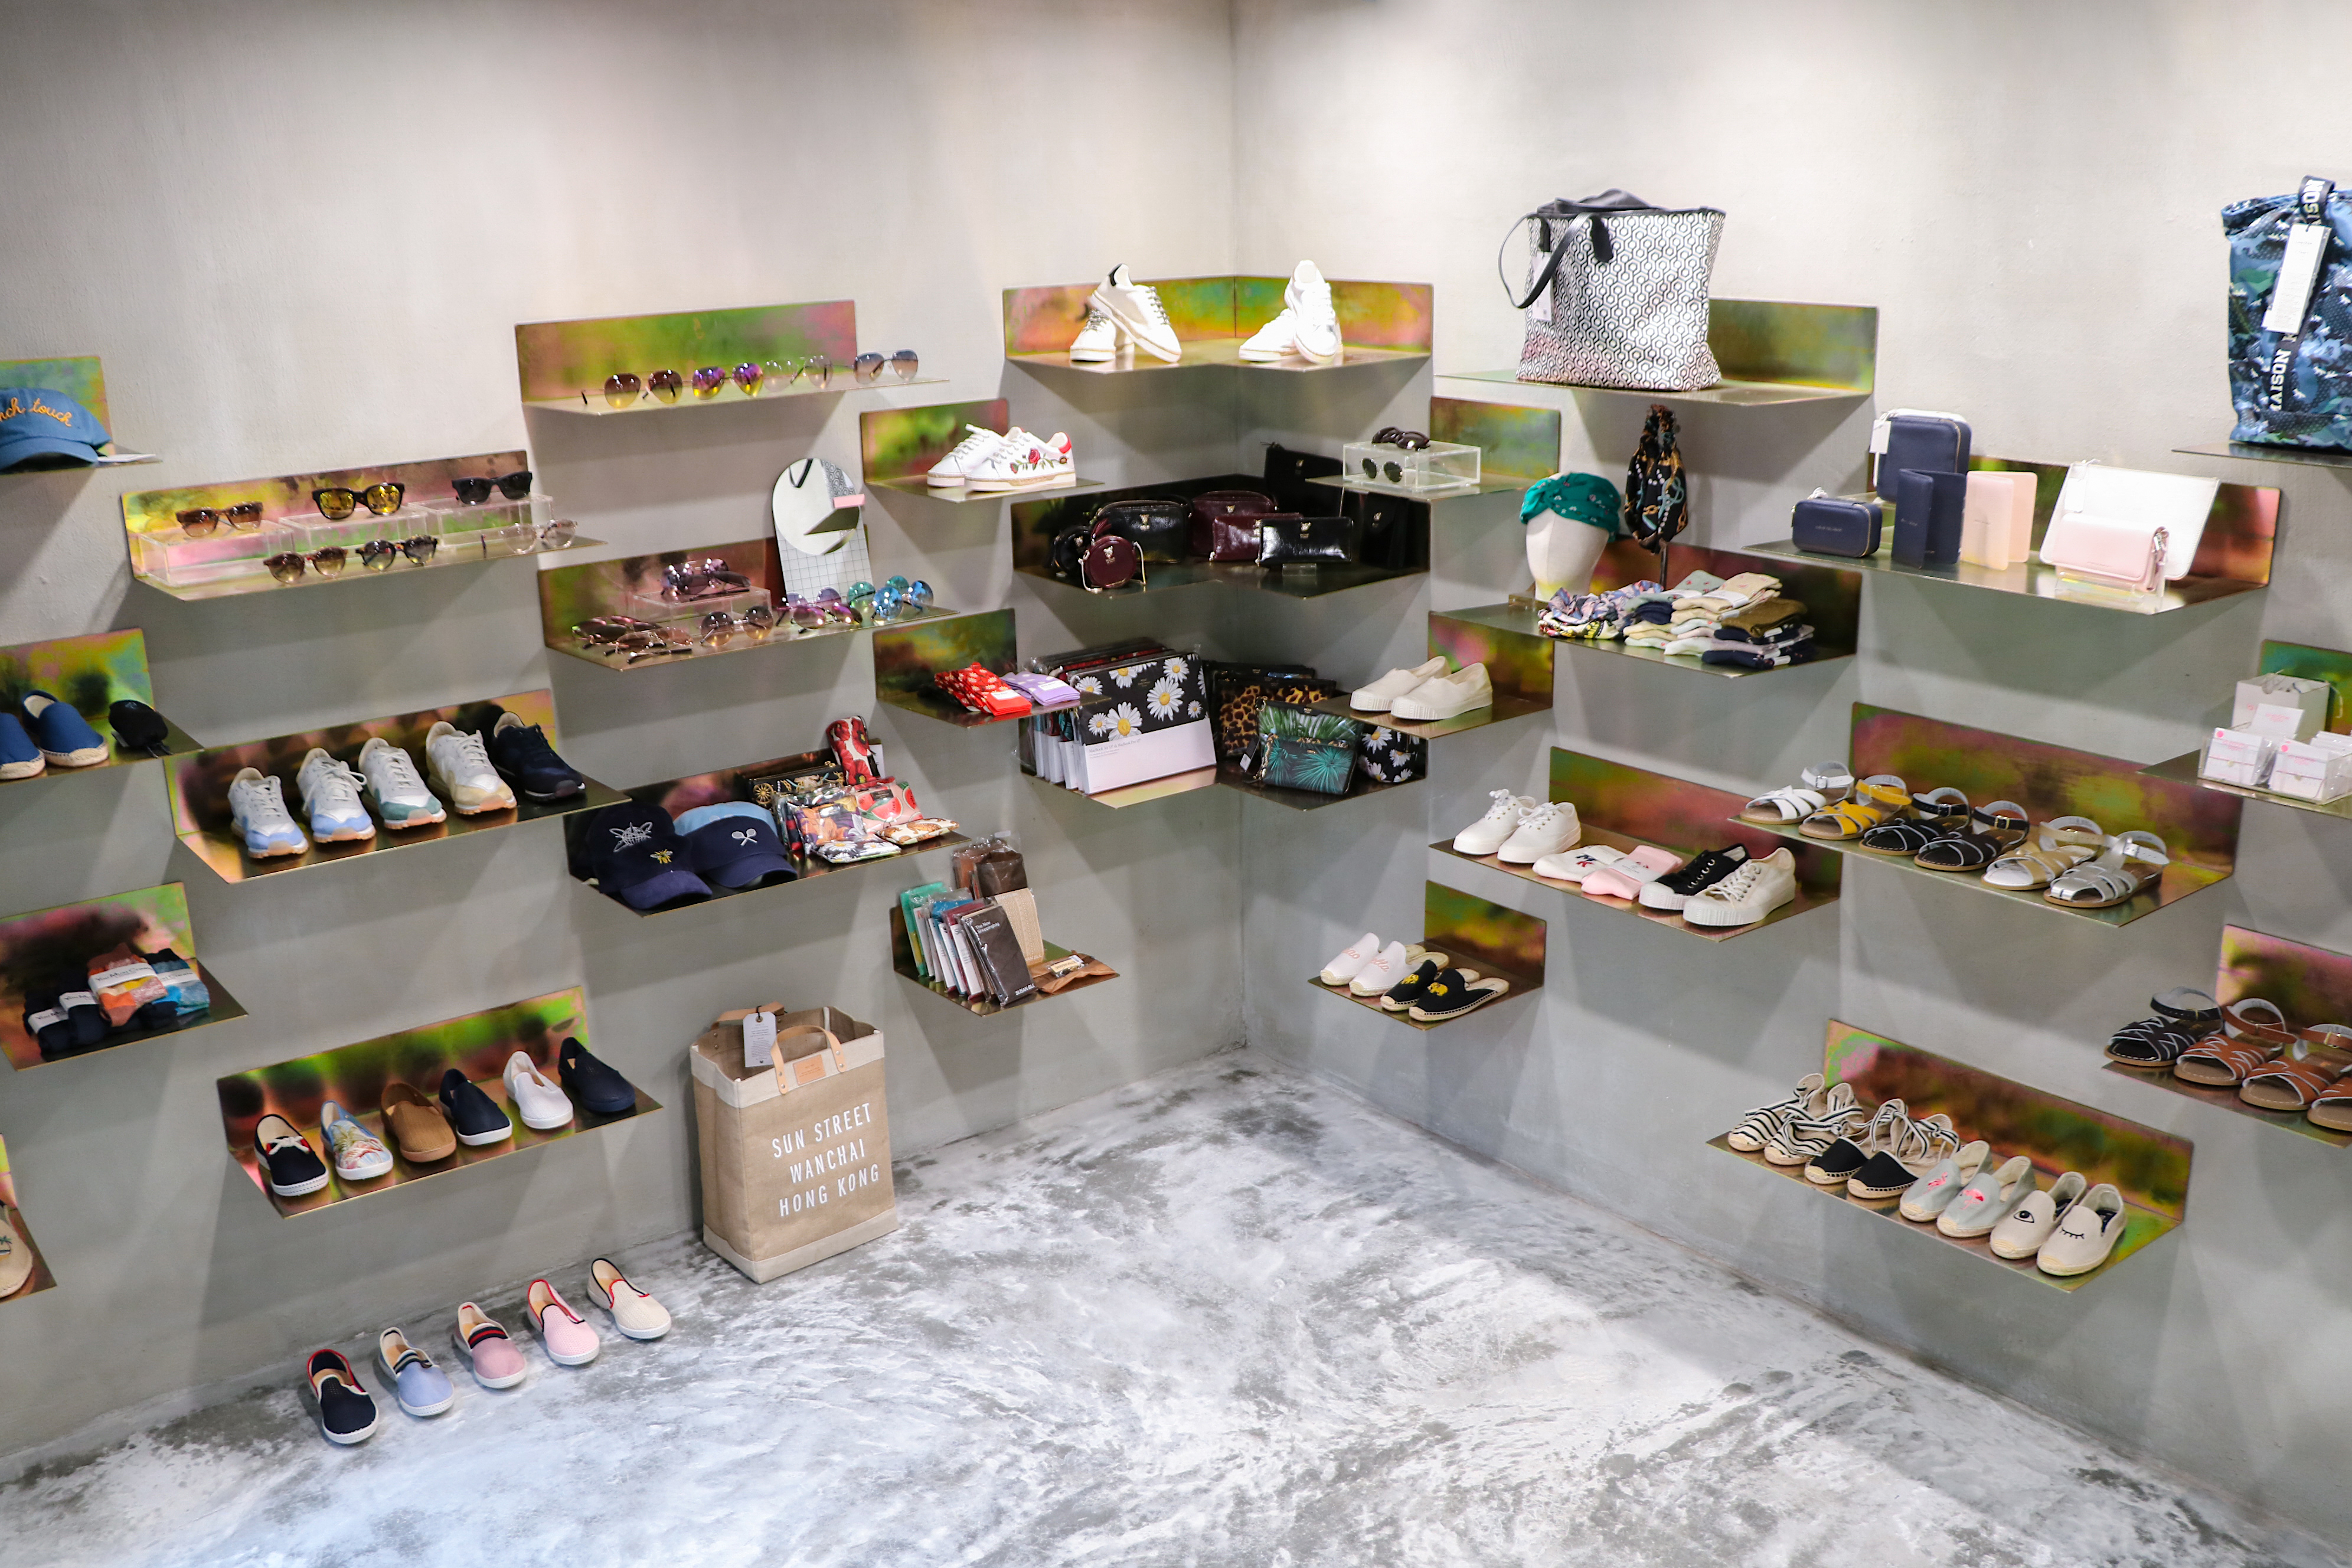 Kapok sells items that are affordable yet premium niche brands such as Common Projects and Veja sneakers.